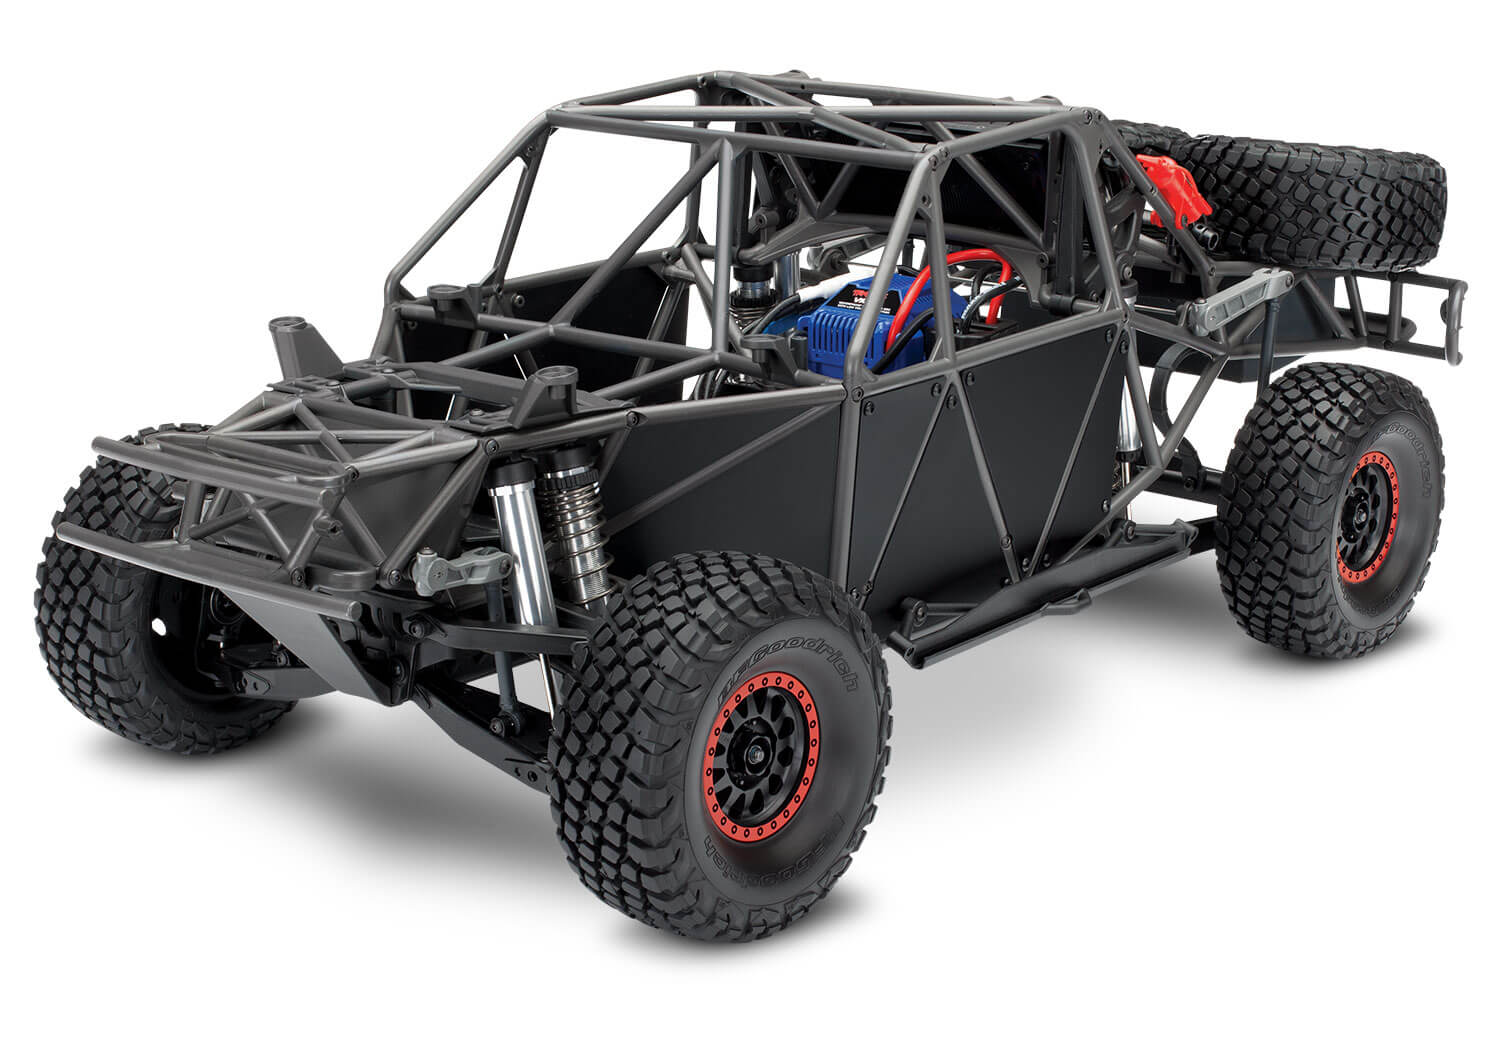 chassis-3qtr-rigid